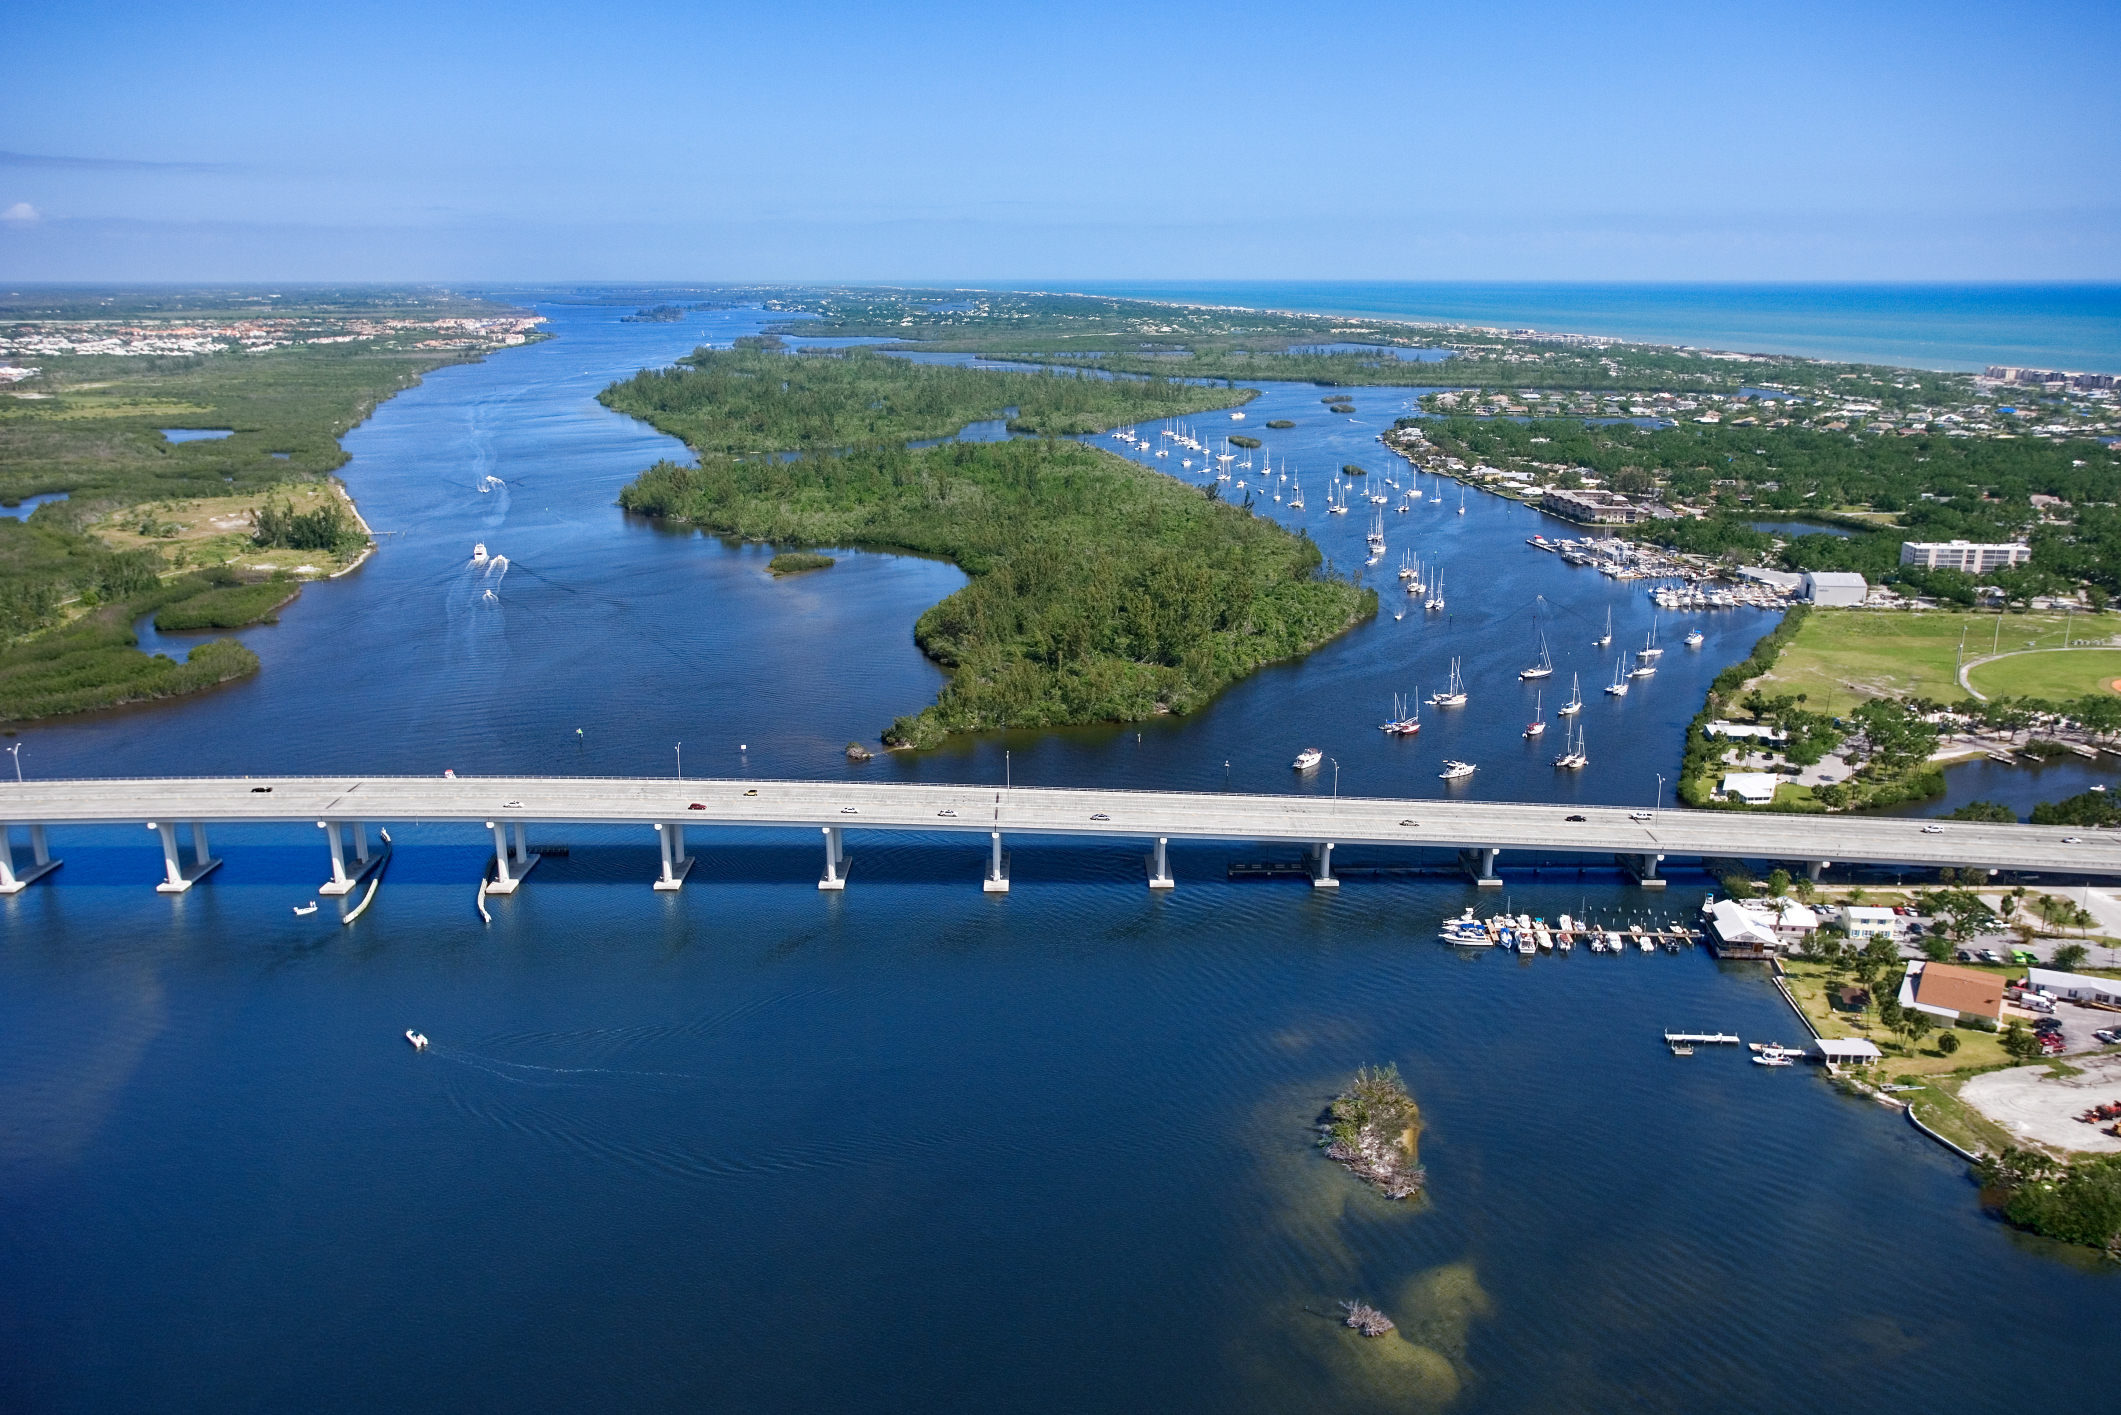 How To Rent A Houseboat To Cruise The Intracoastal Waterway Usa Today